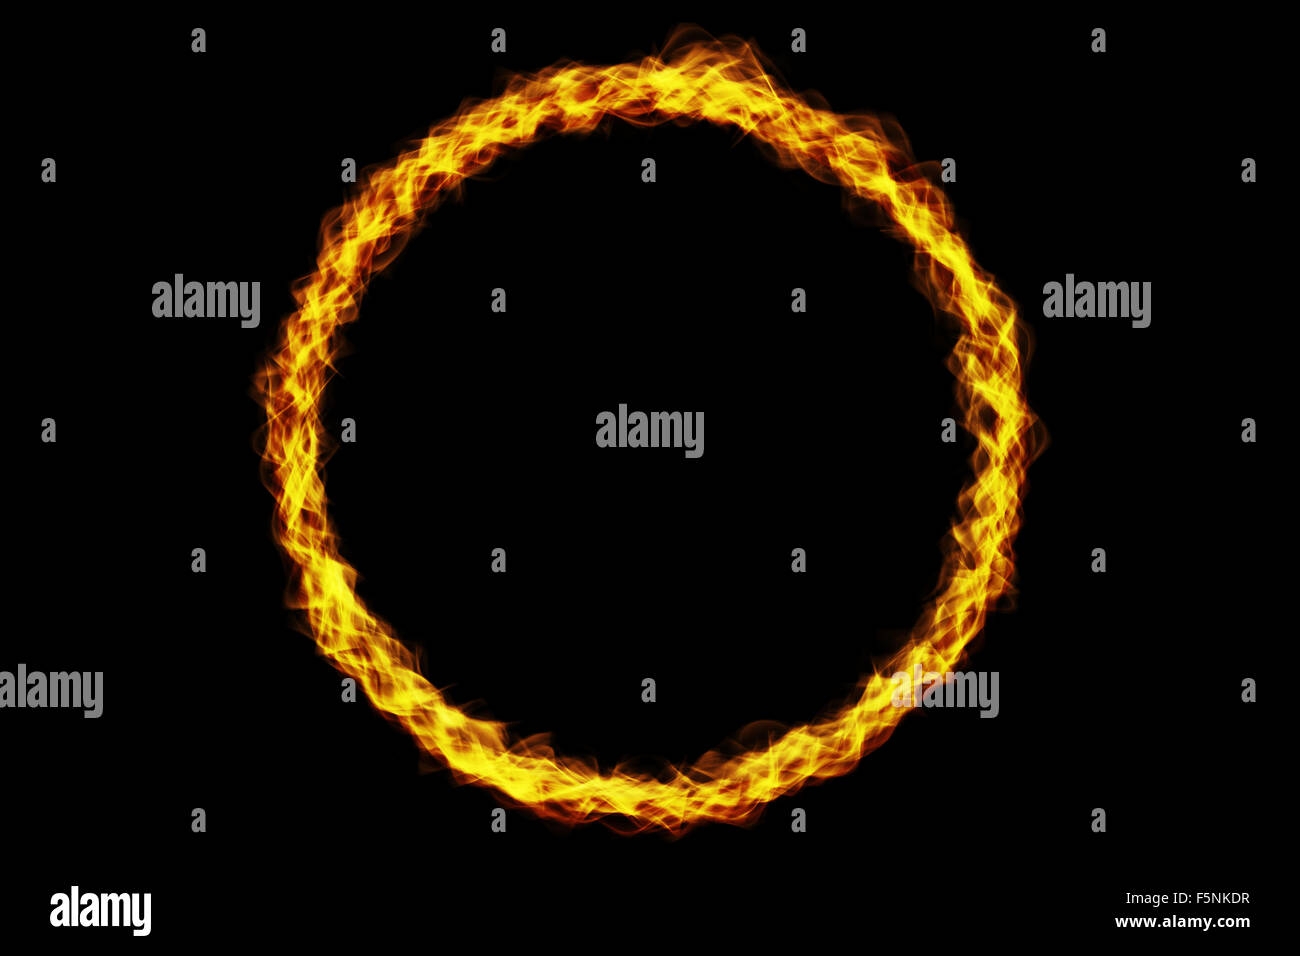 Flame ring of fire burning on black background. - Stock Image